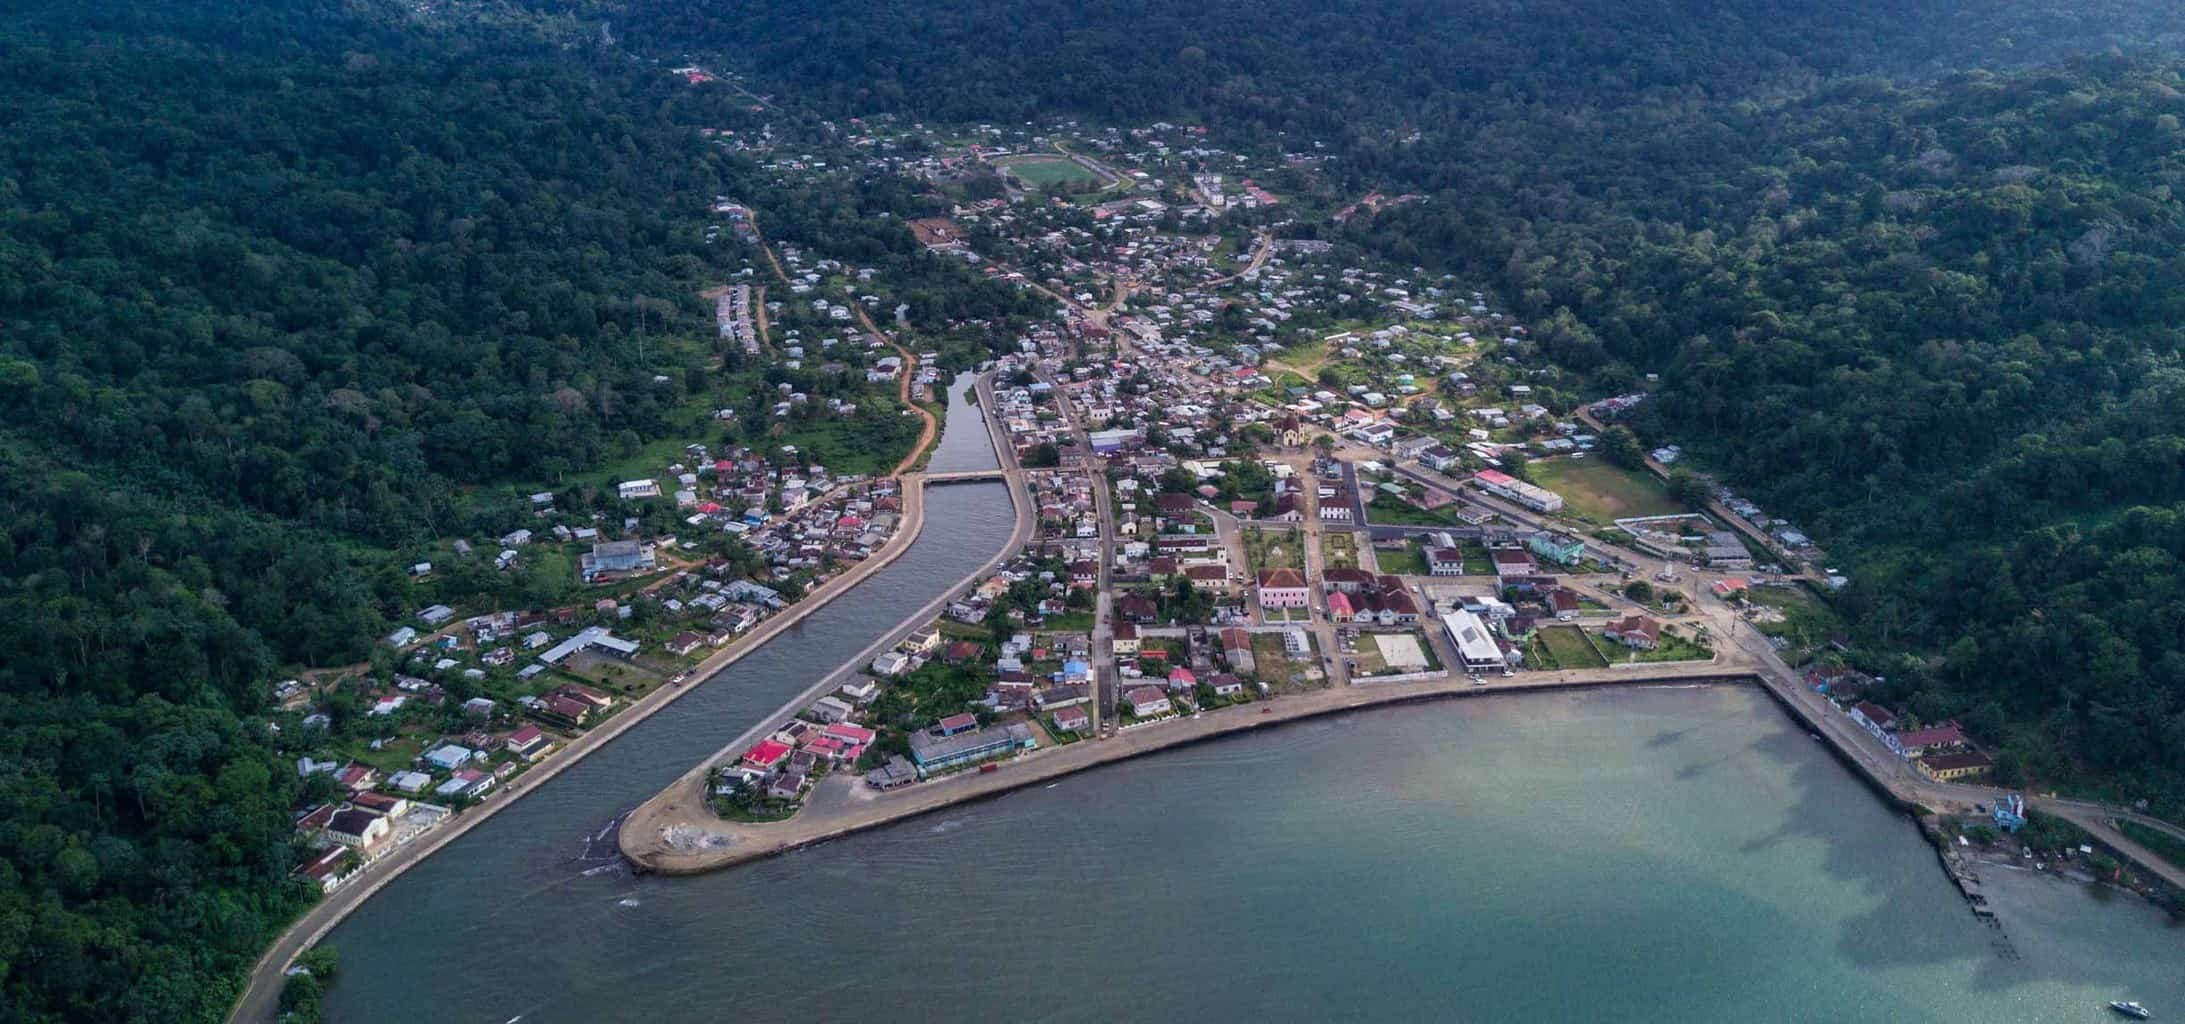 The only town on the Island, Santo Antonio